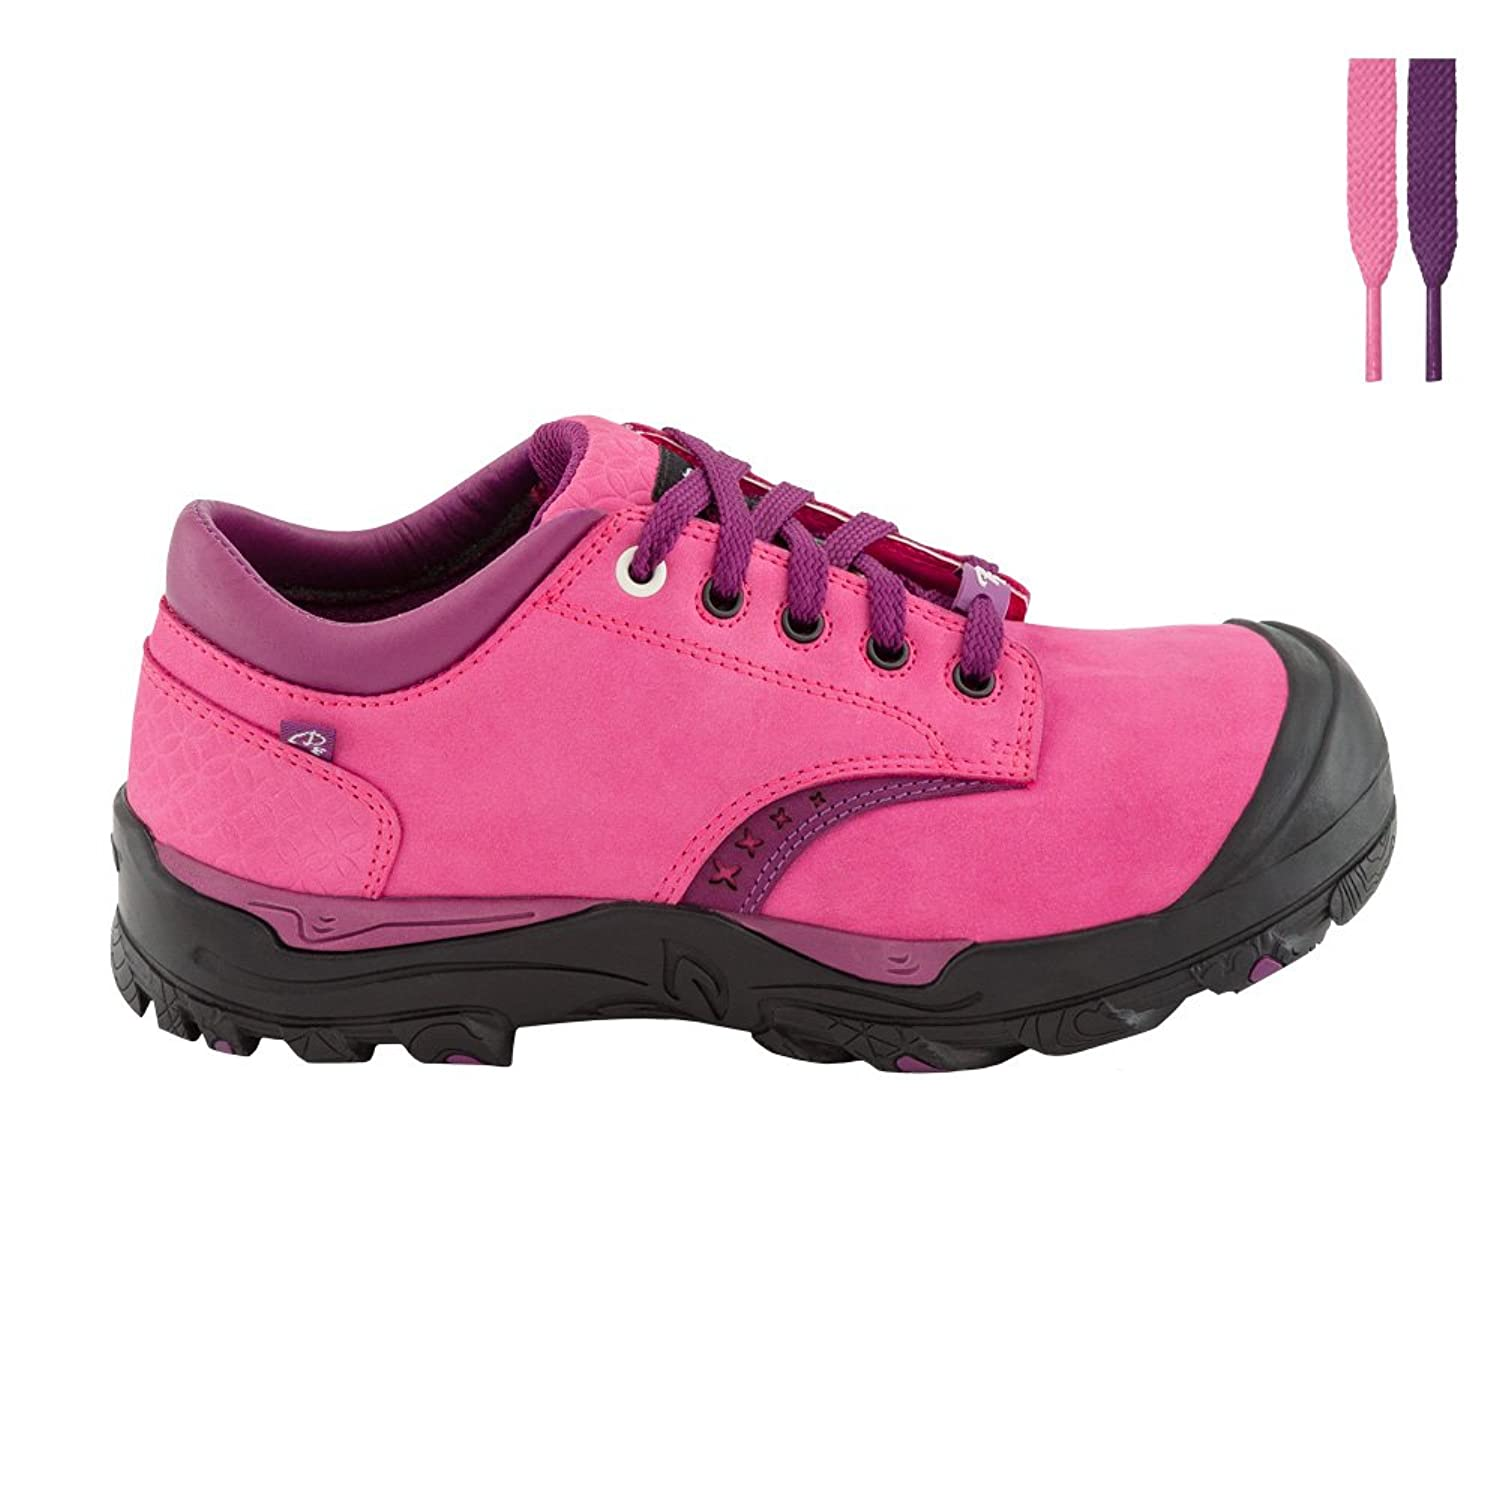 Reebox Womens Work Shoe Size 10 Slip Resistant Black And Pink Lace Up Superior Materials Clothing, Shoes & Accessories